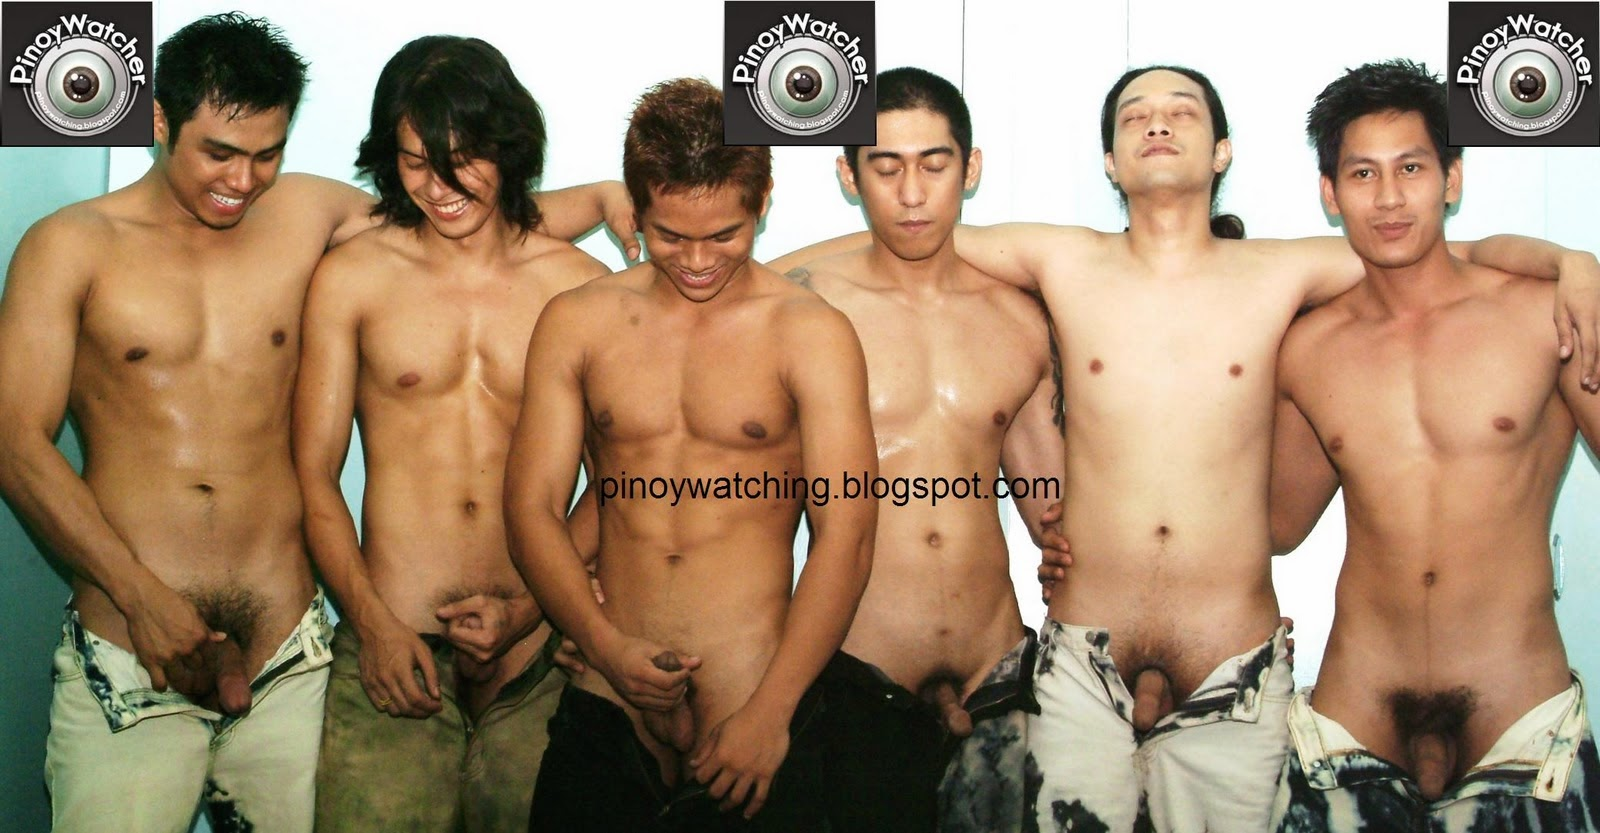 pinoy nude photos gwapong